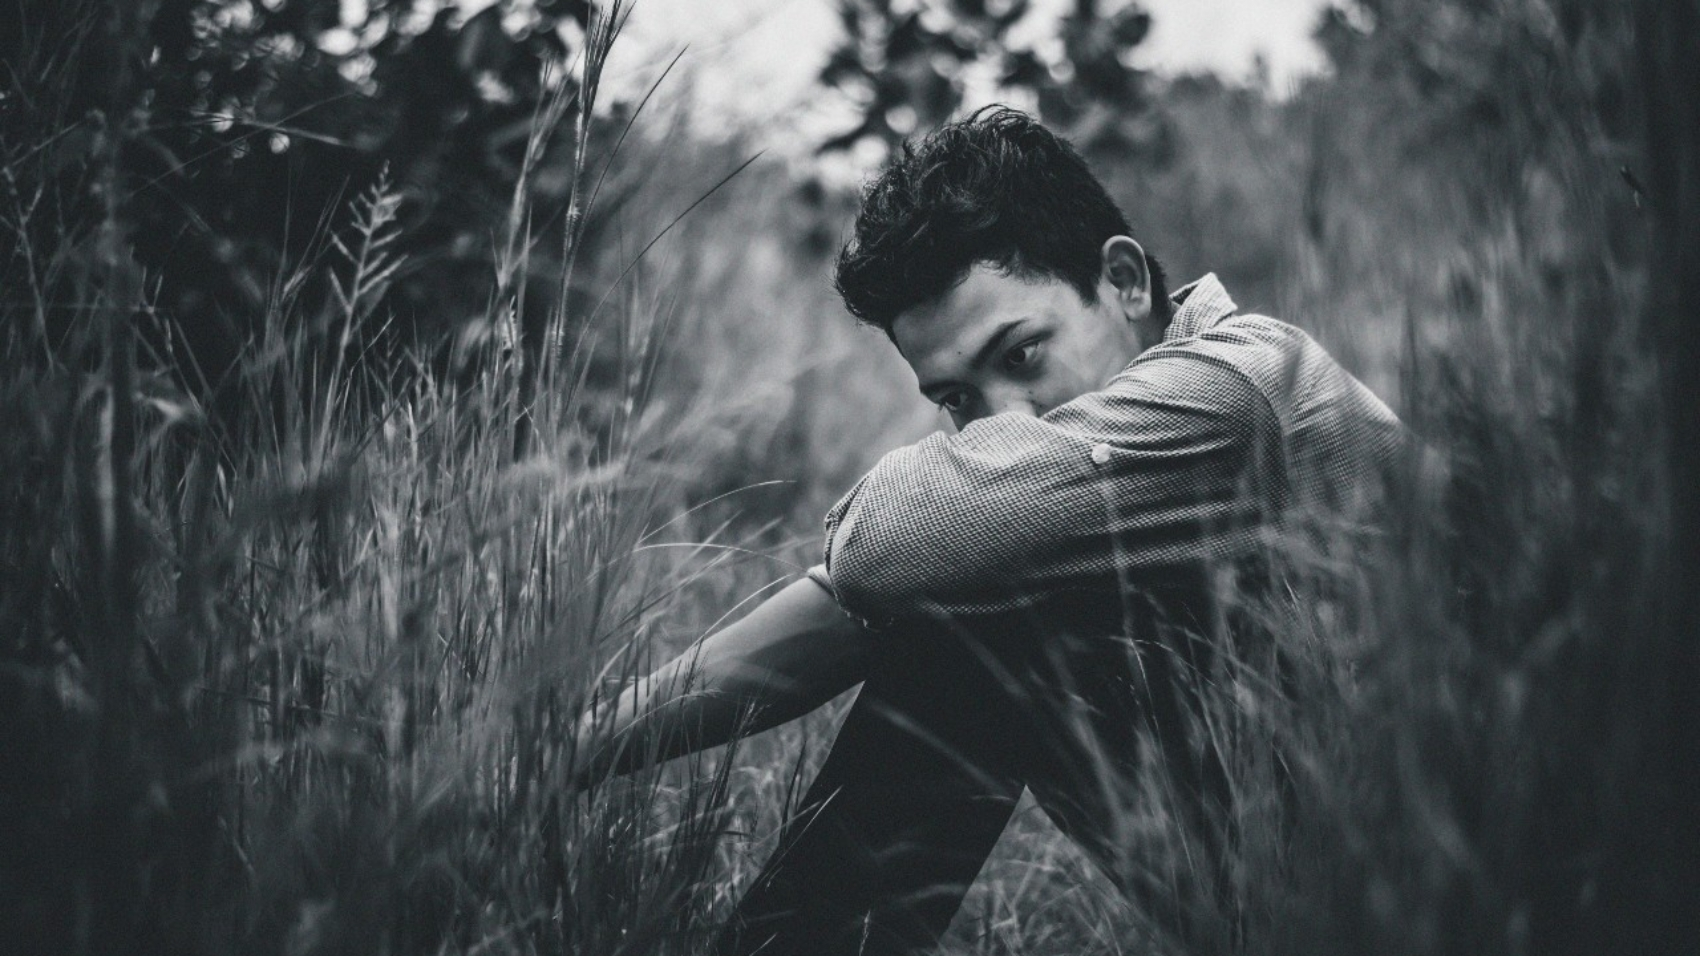 A man sits in a field, lost in thought